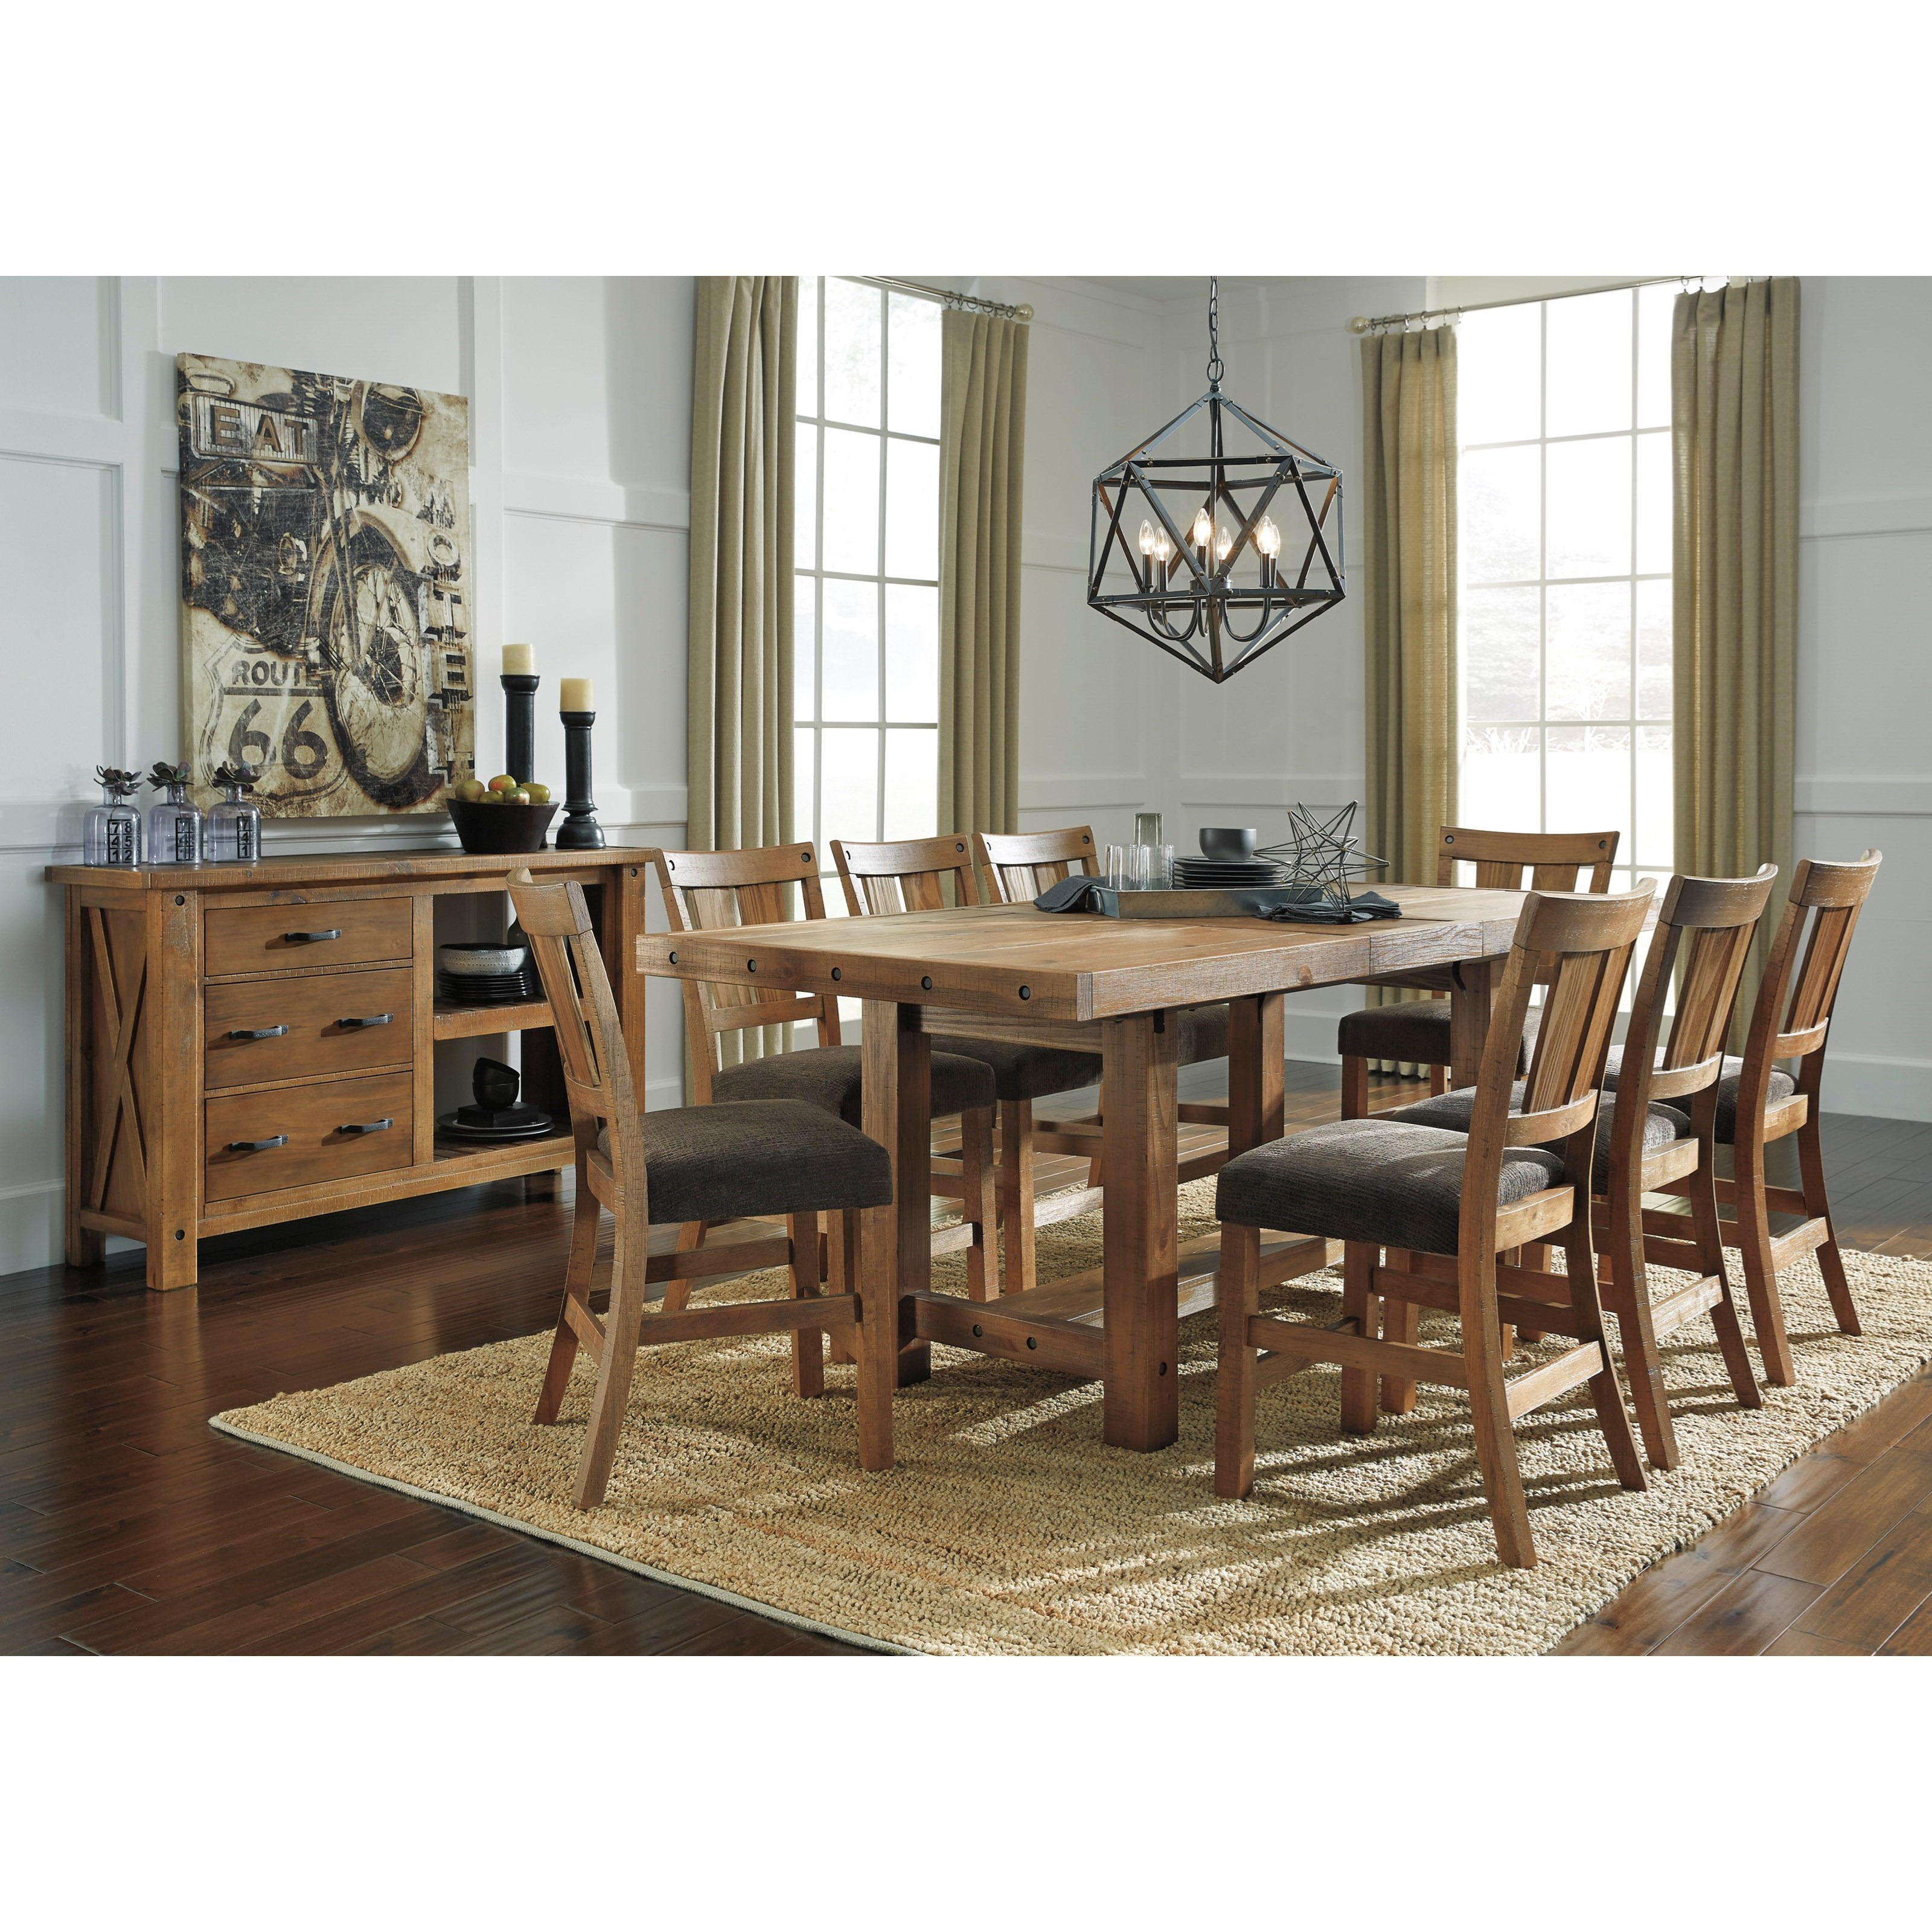 Benchcraft tamilo casual dining room group virginia for Casual dining room furniture